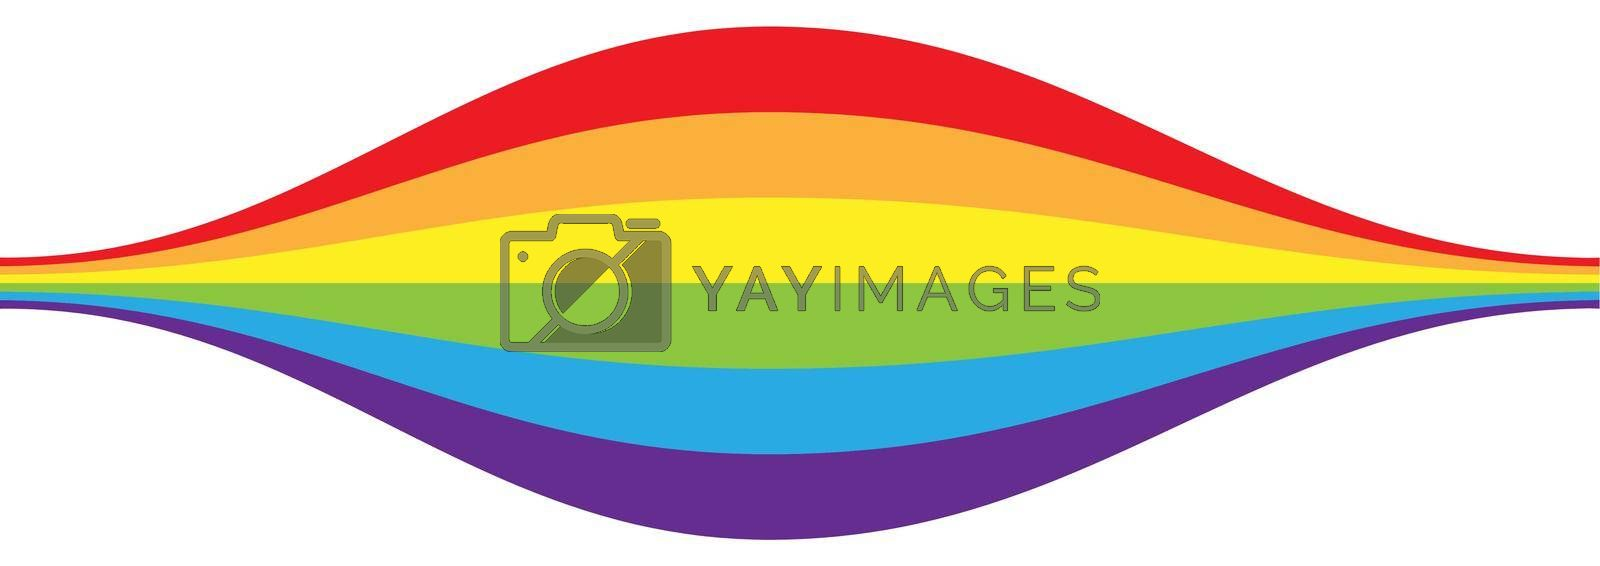 A bloated wave of LGBT flag colors for posters, banners, and creative design. Simple Style